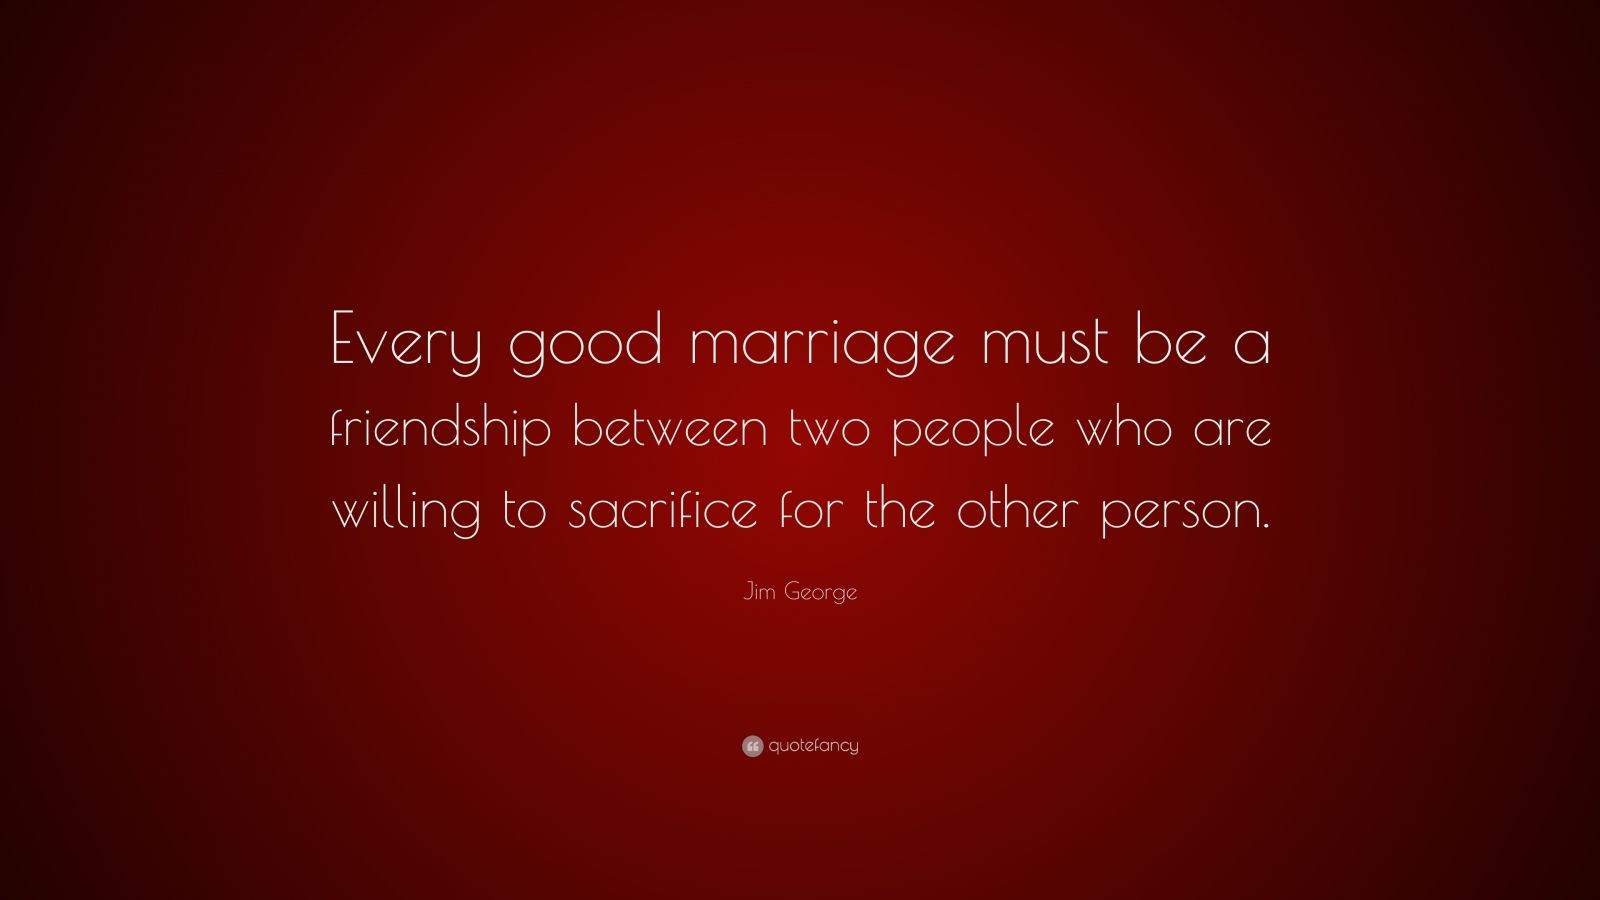 """Jim George Quote: """"Every good marriage must be a friendship between two people who are willing to sacrifice for the other person."""""""